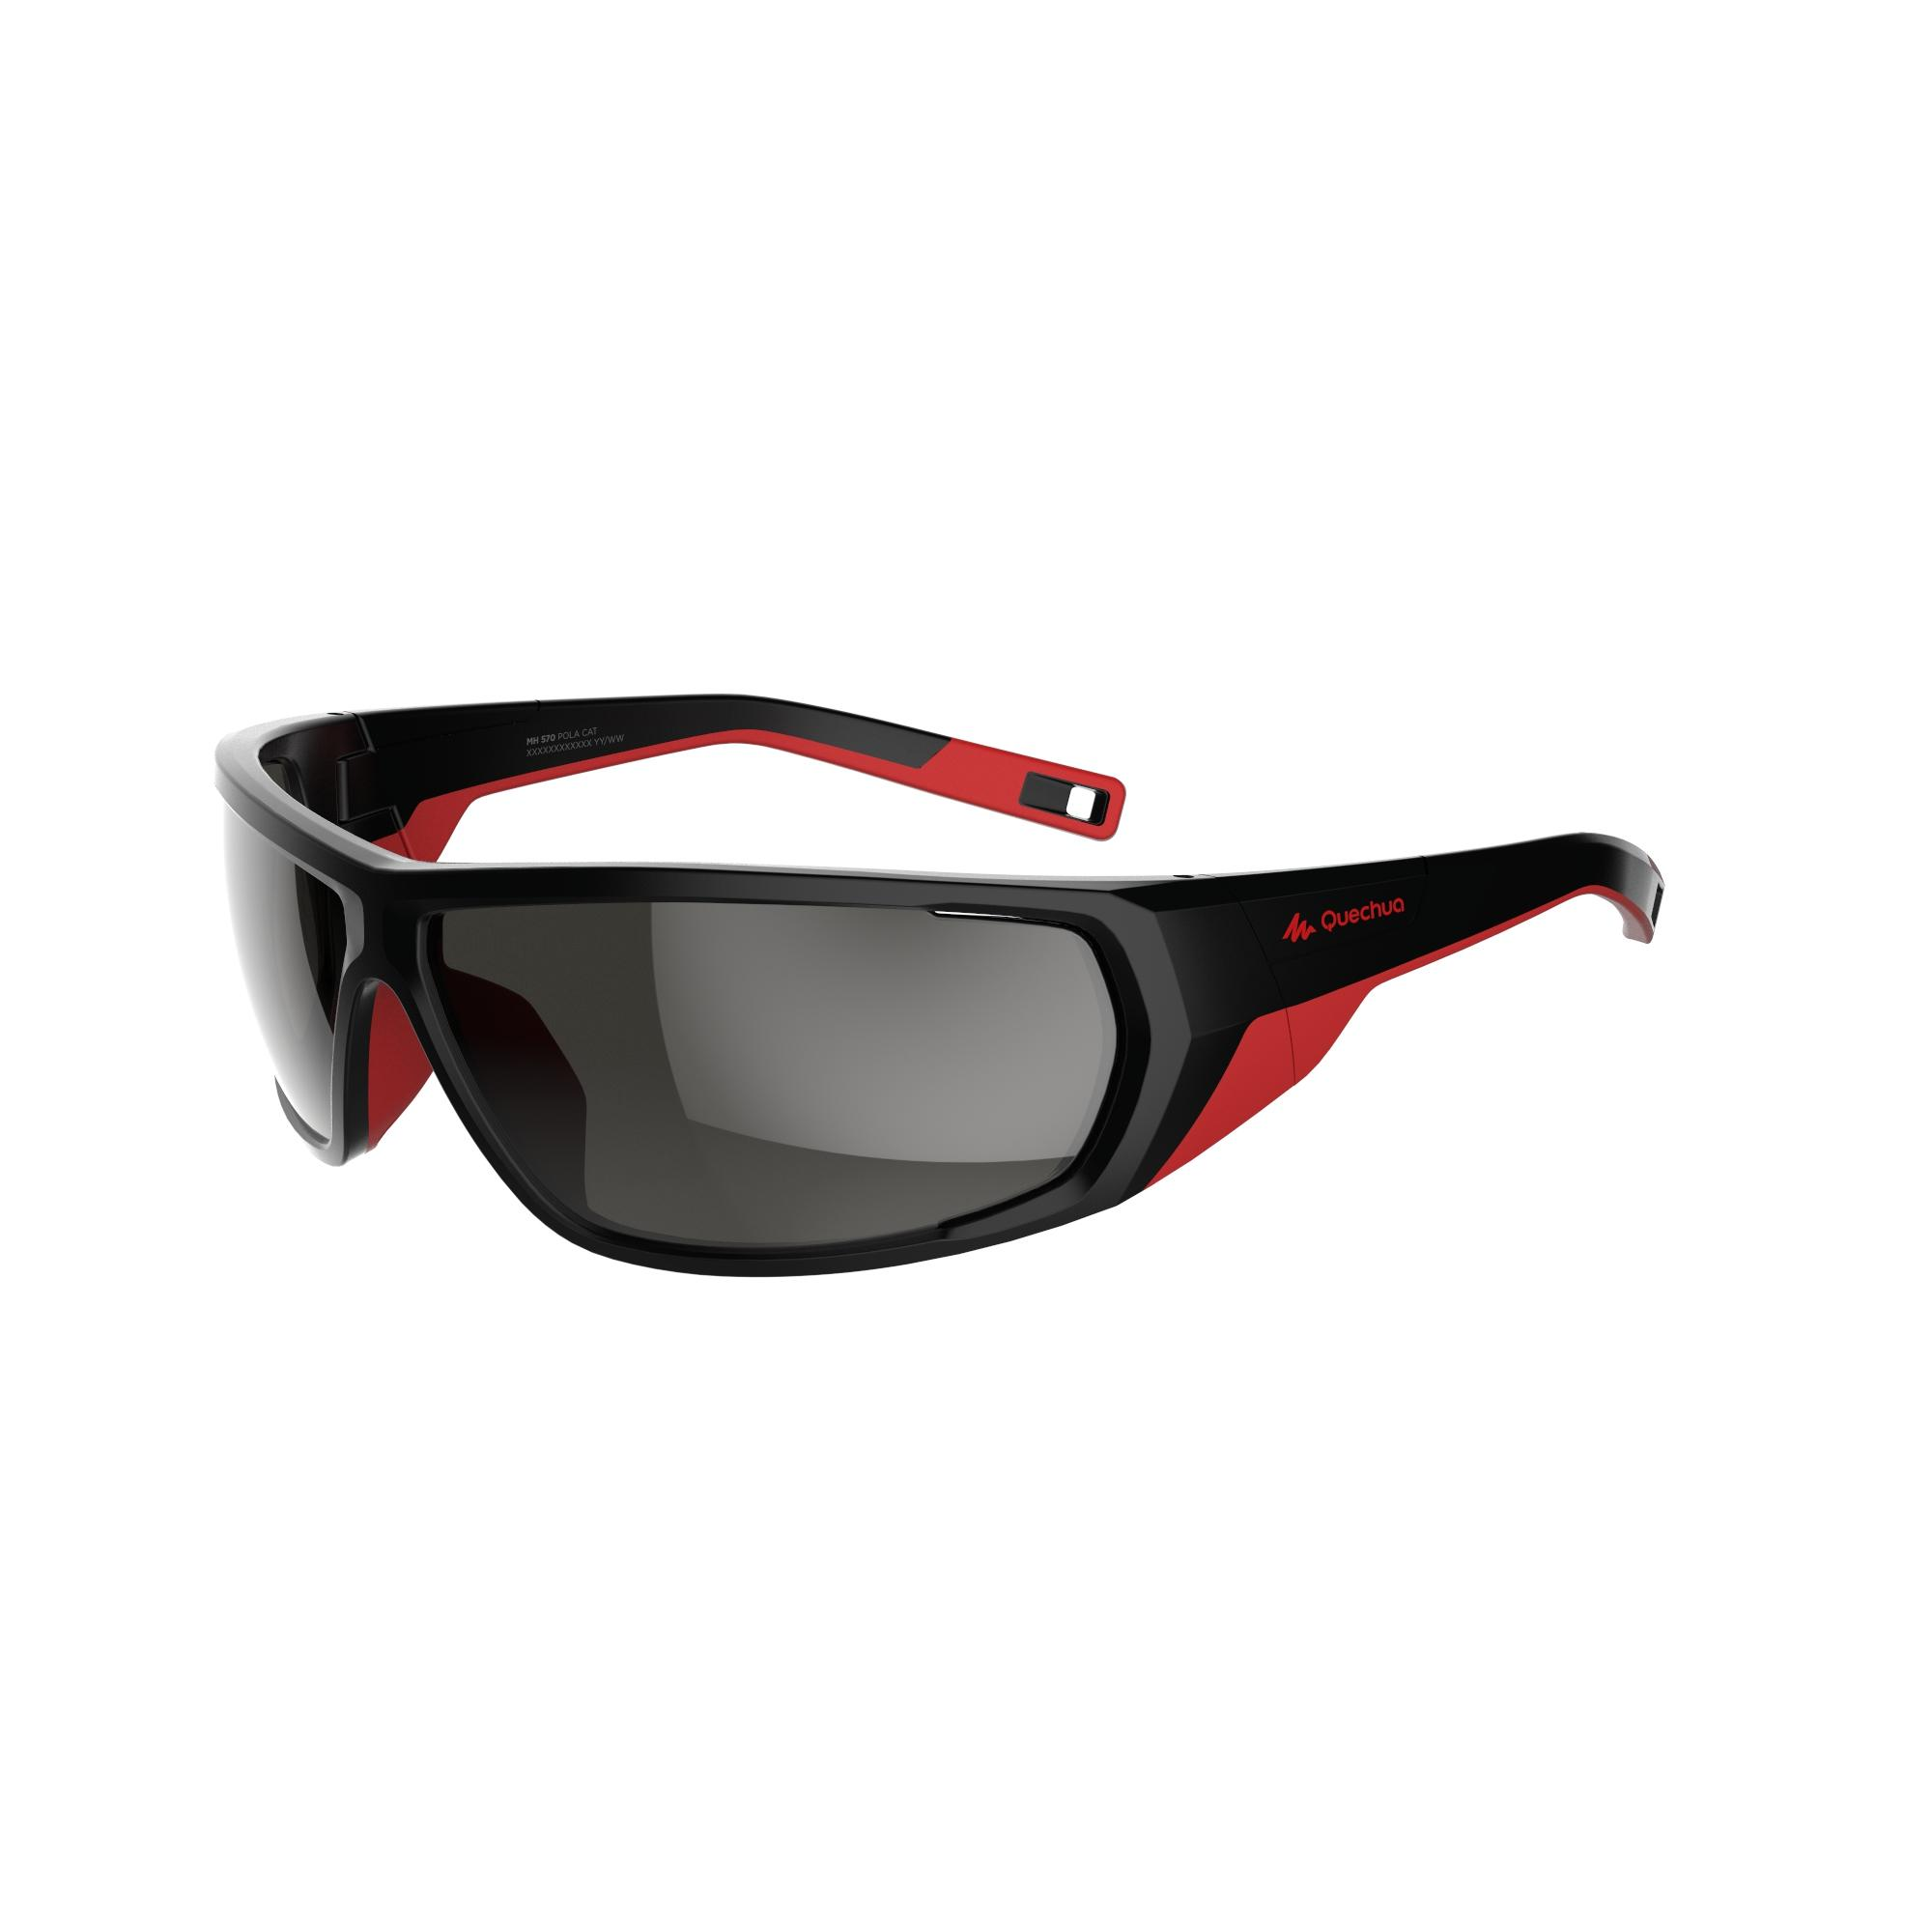 MH 570 Adult Category 4 Polarising Hiking Glasses - Black & Red